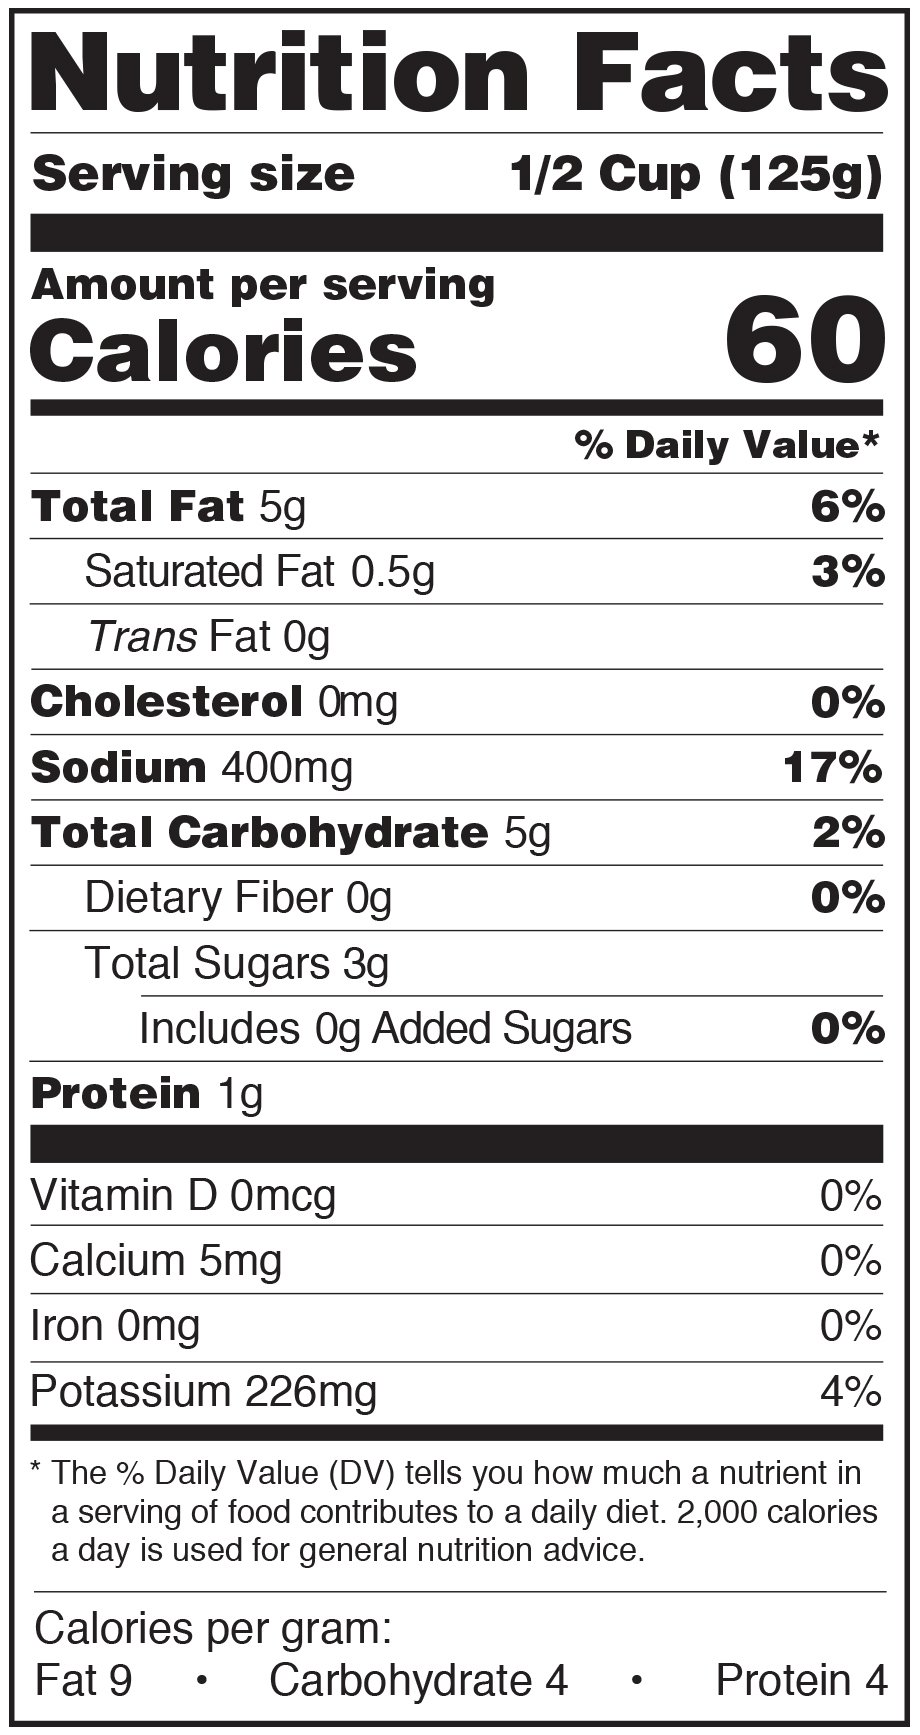 Paesana Pasta Sauce Nutrition Facts Label fra diavolo